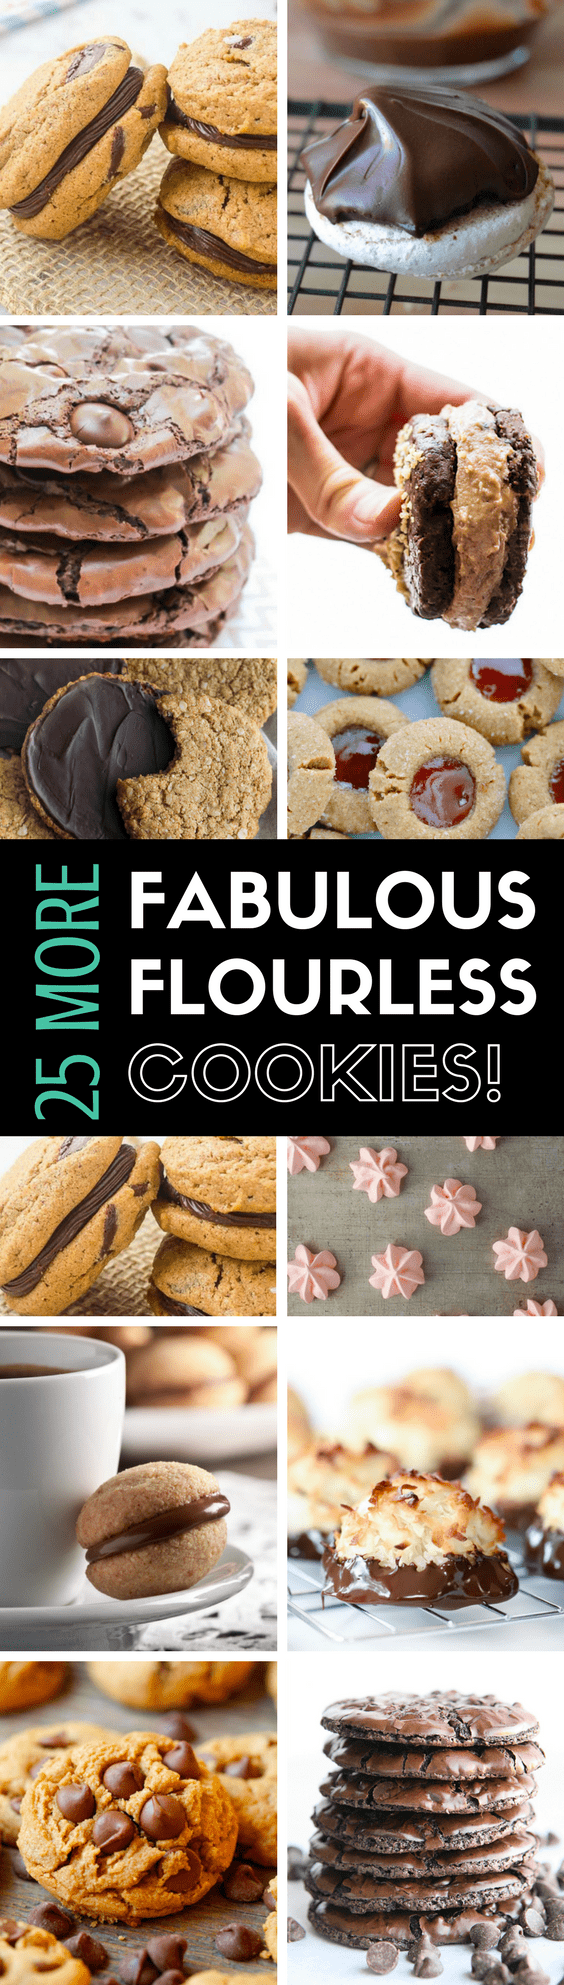 25 MORE Fabulous Flourless Cookies pin